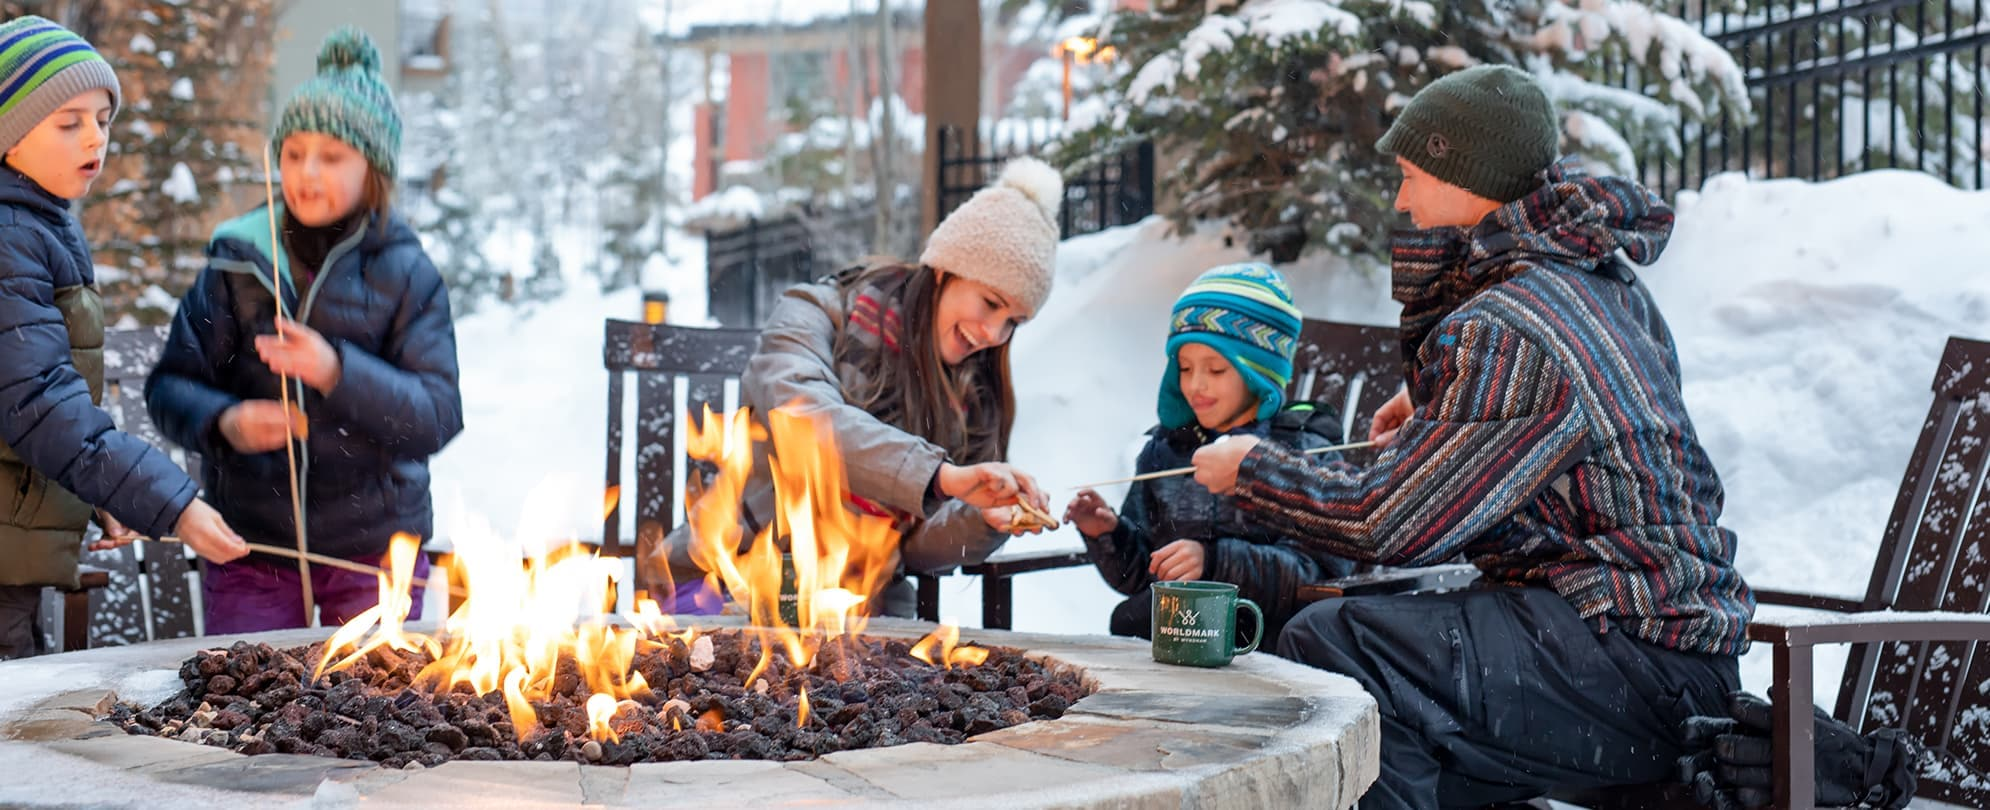 Family of five bundled up from the snow toasting marshmallows at an outdoor fire pit